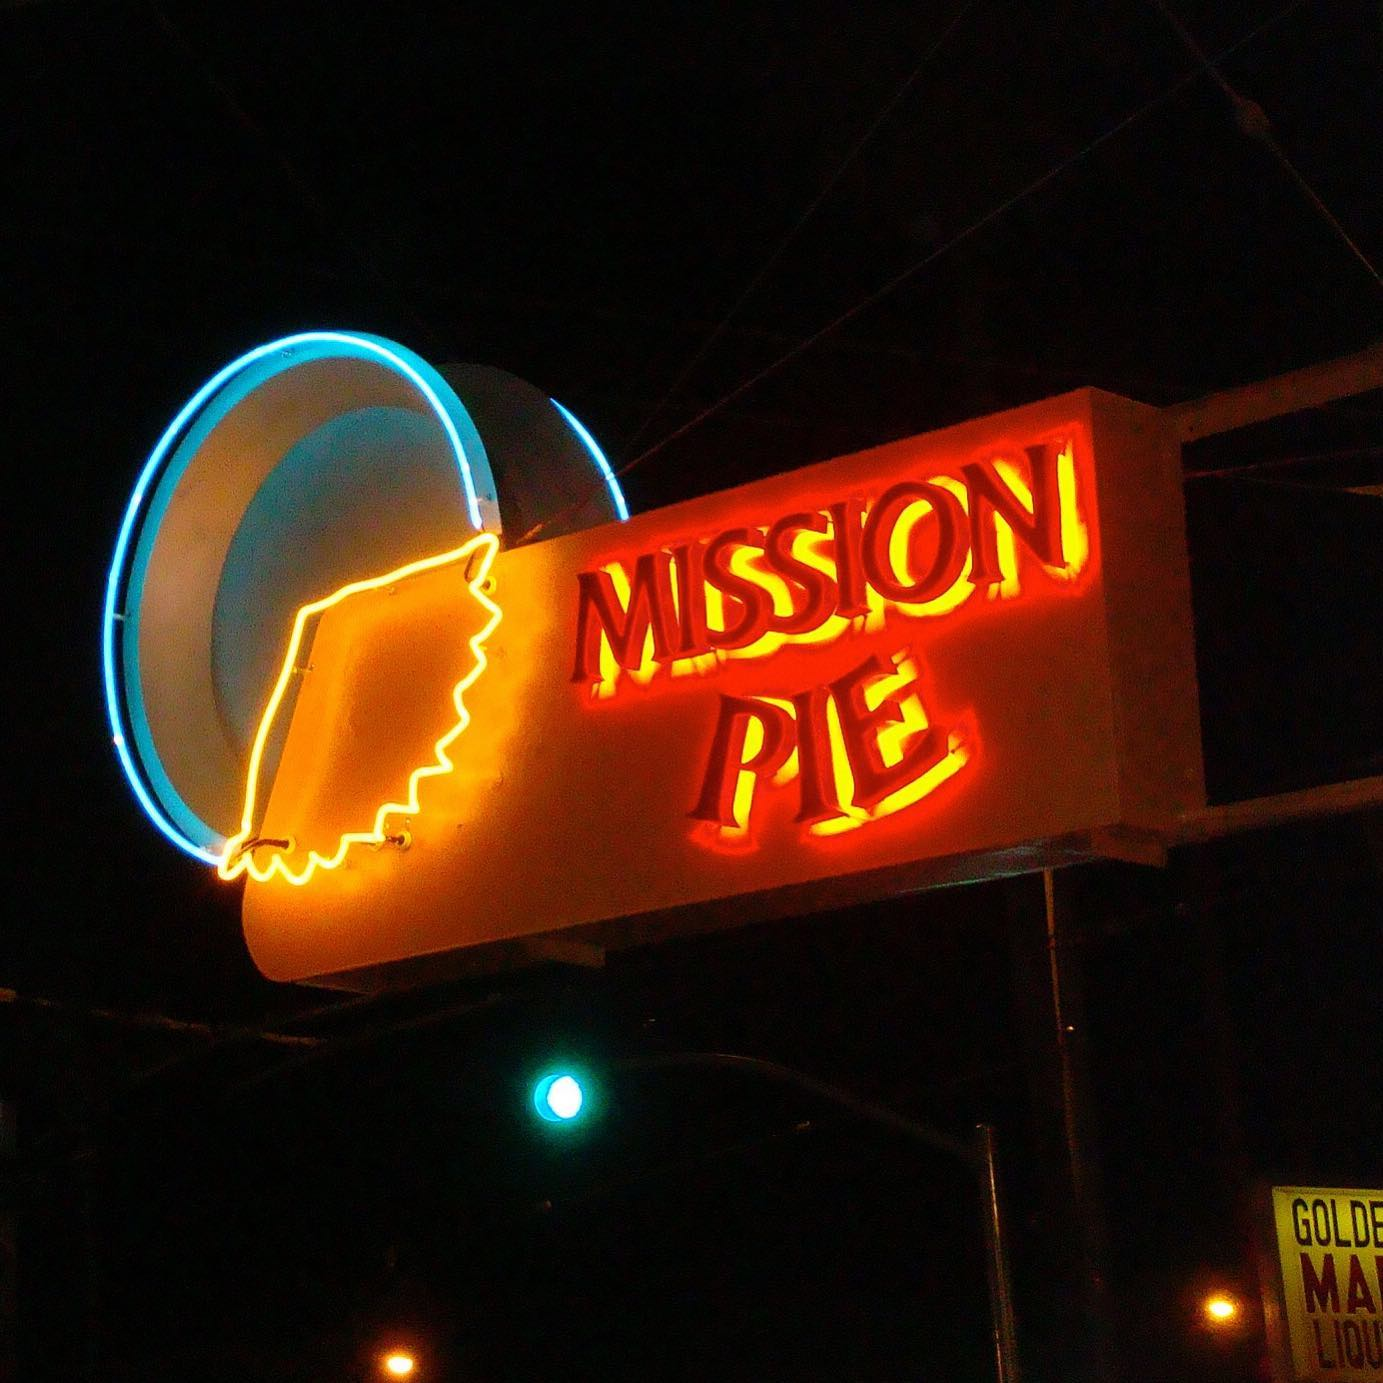 The Mission Pie sign at night